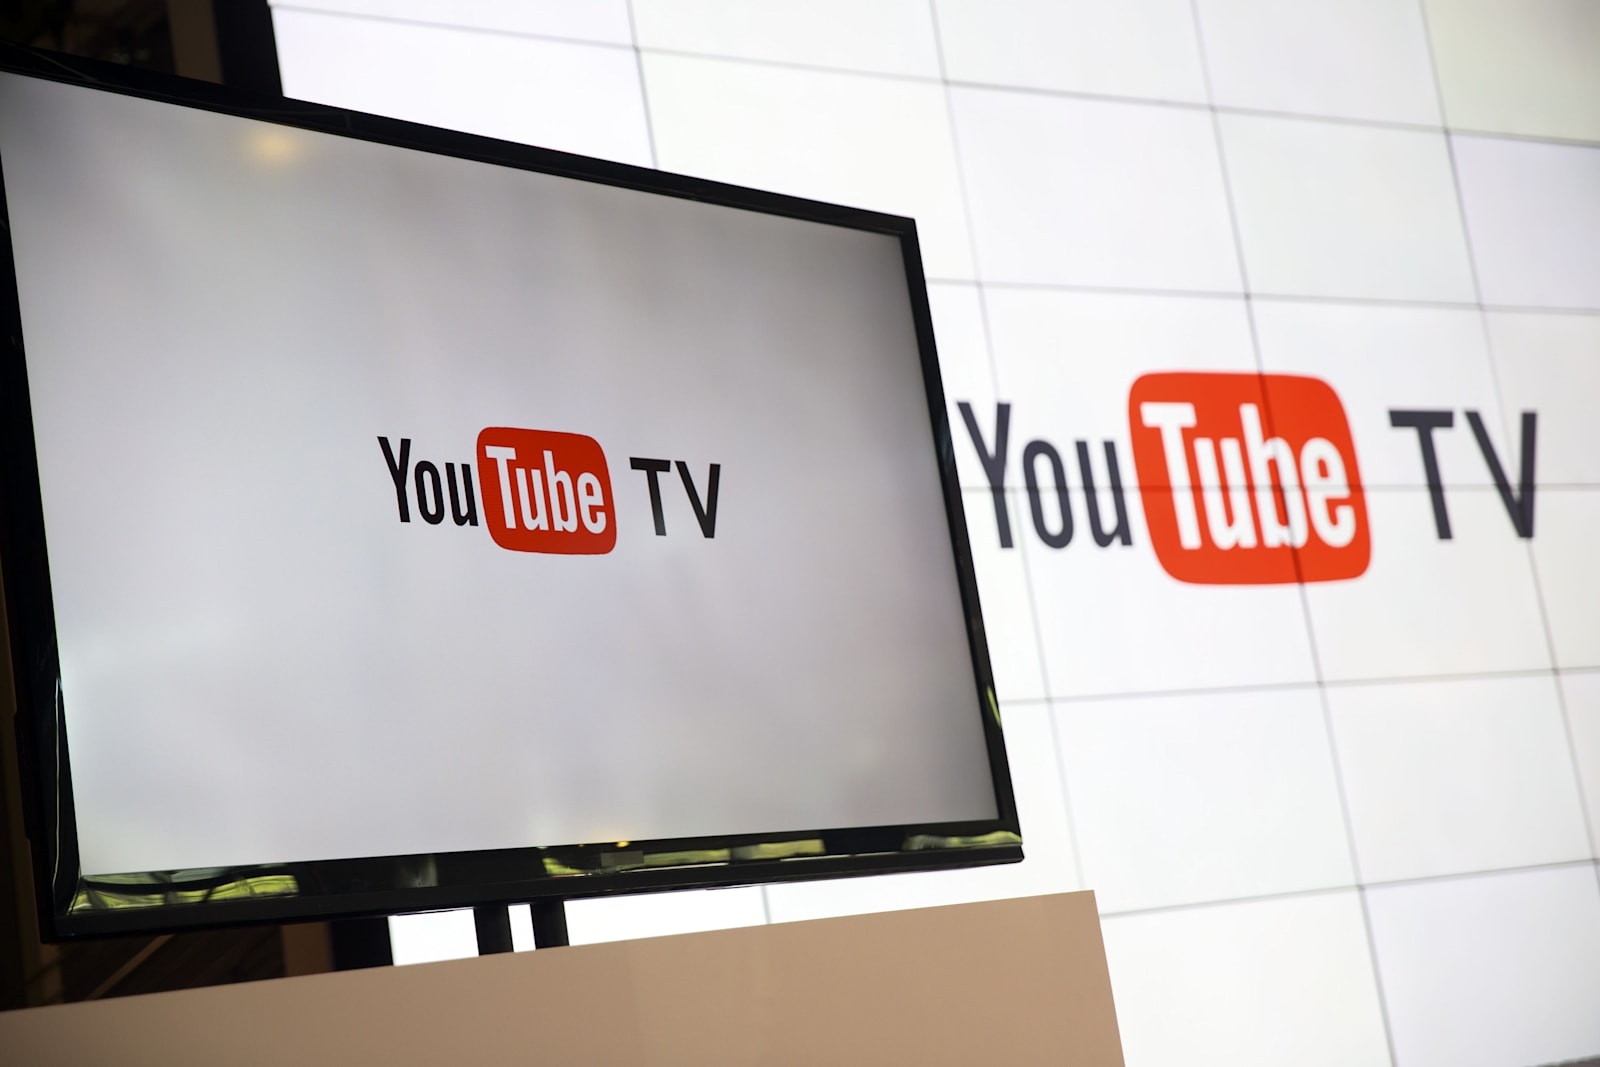 YouTube TV expands to ten more US metropolitan markets